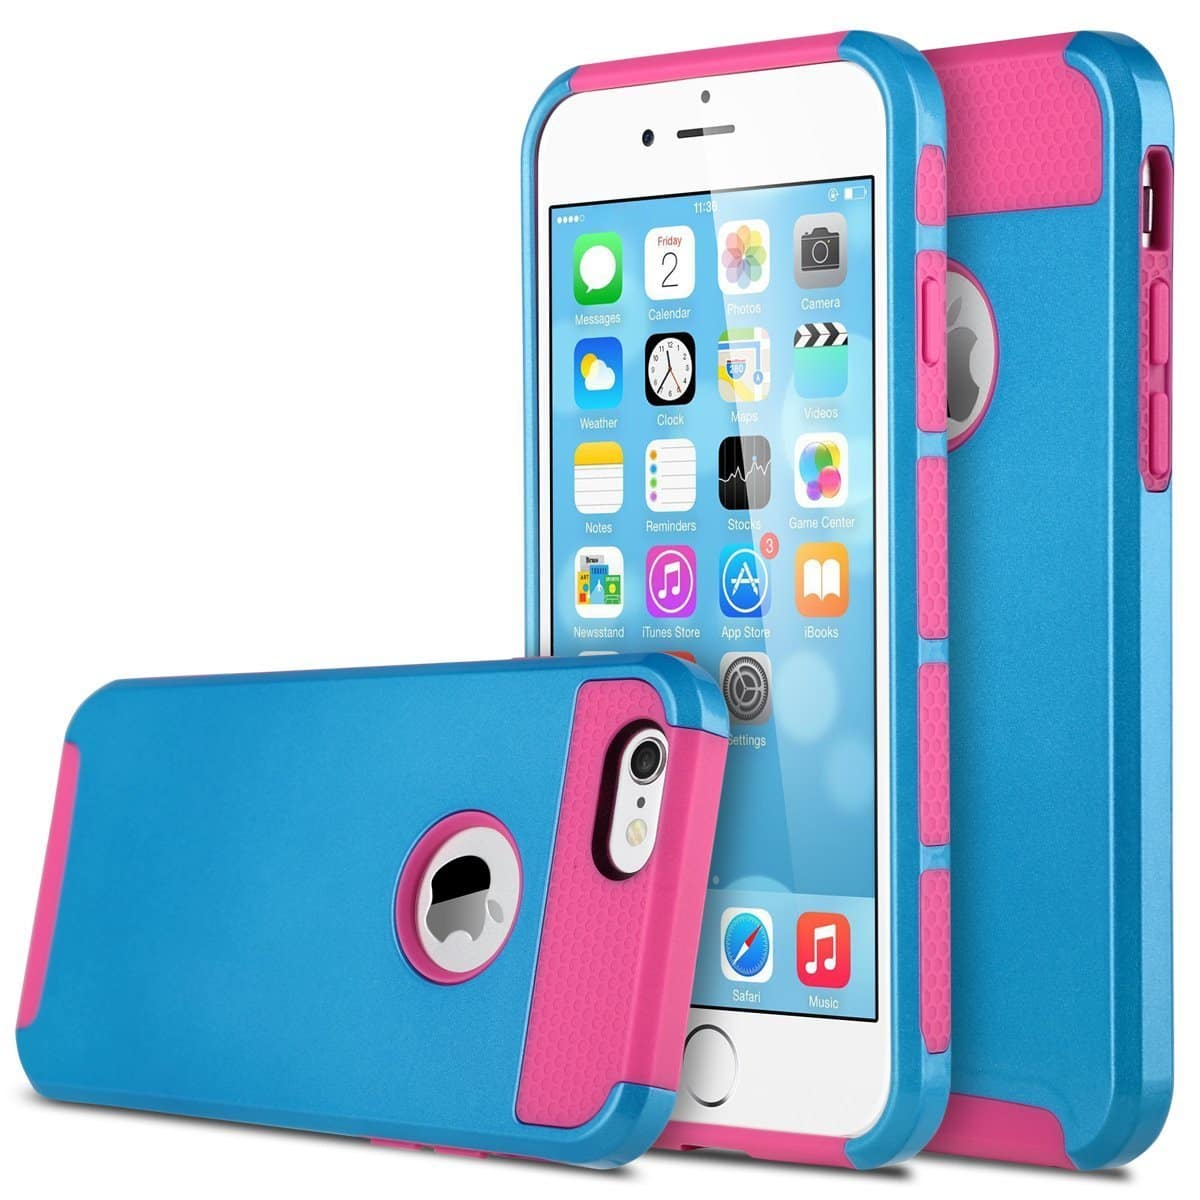 ULAK iPhone 6, 6s, 6 Plus Cases  from $2 & More + Free S&H